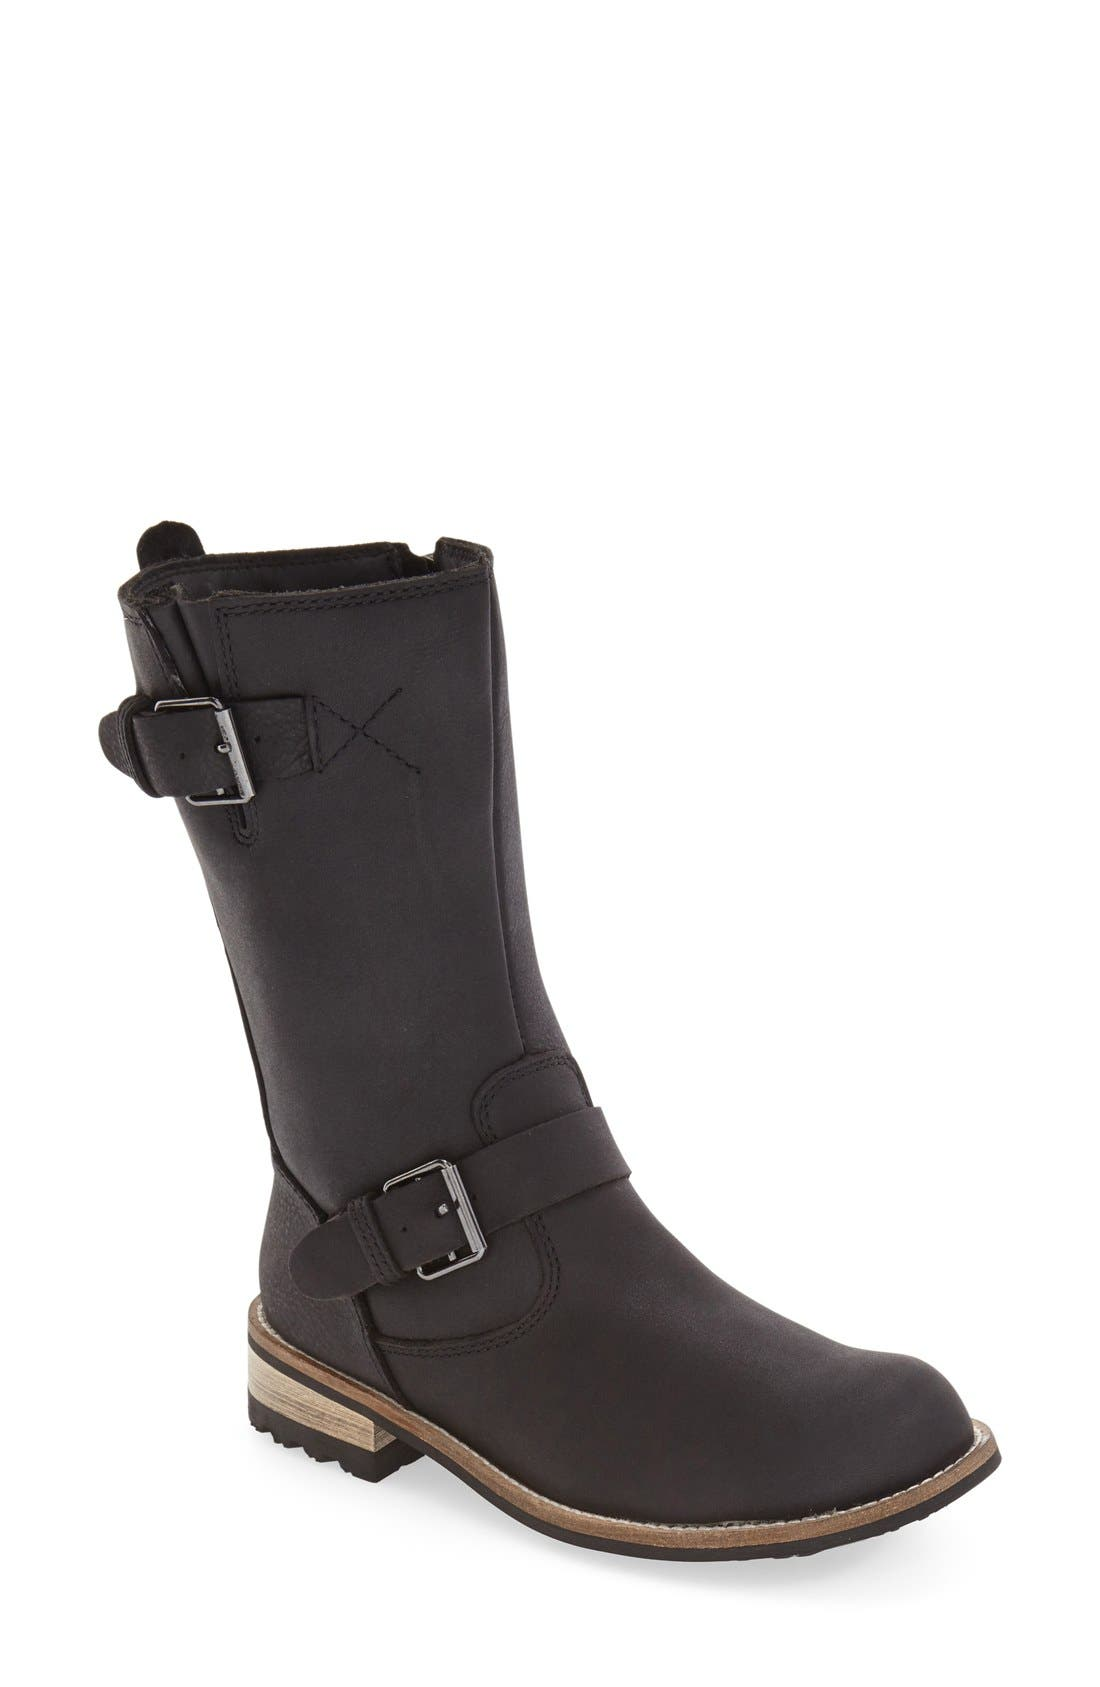 'Alcona' Waterproof Boot,                             Main thumbnail 1, color,                             BLACK LEATHER